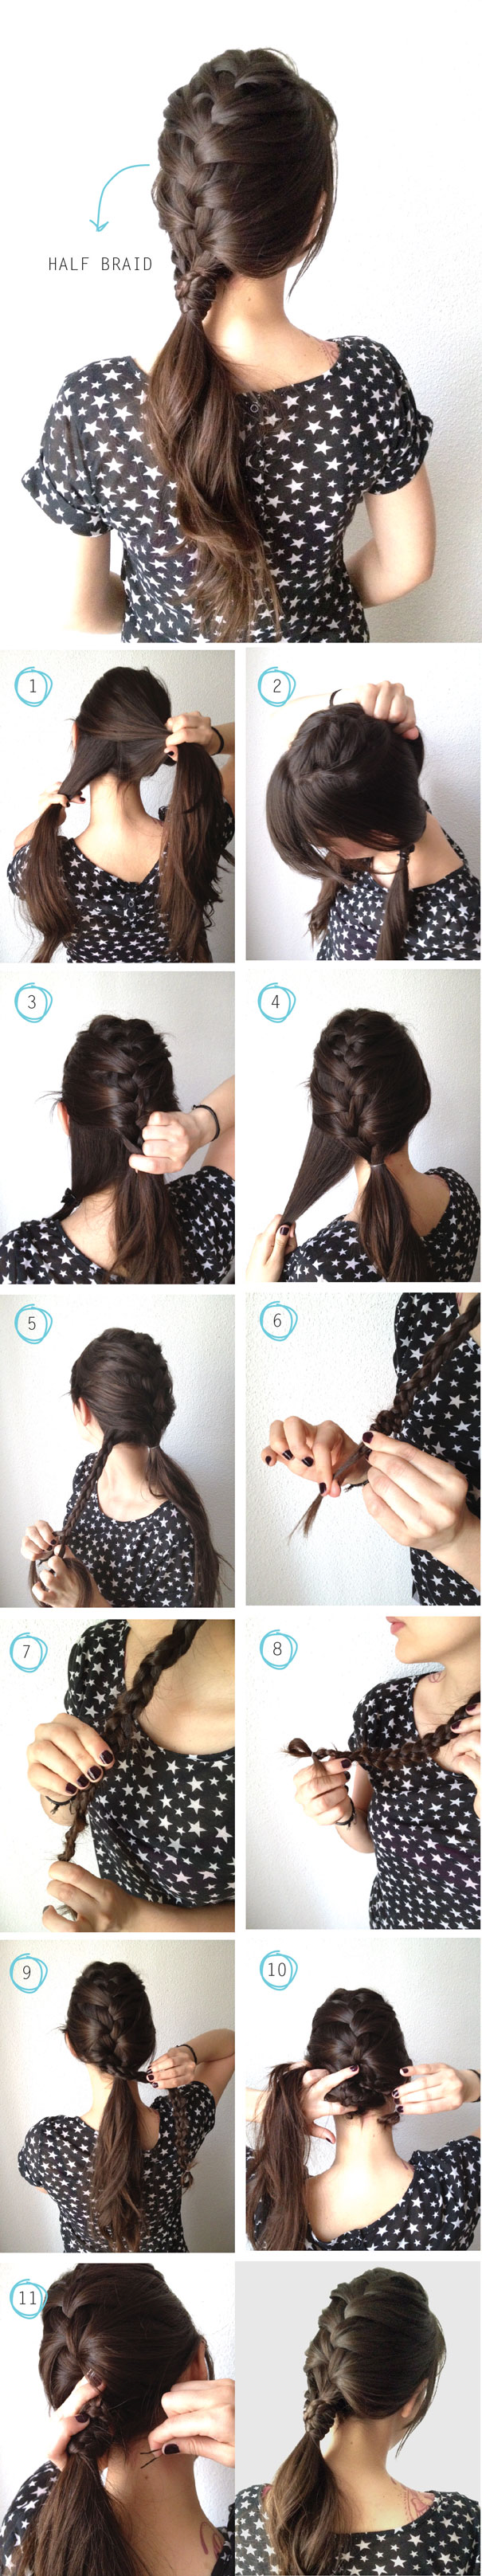 hairstyle10